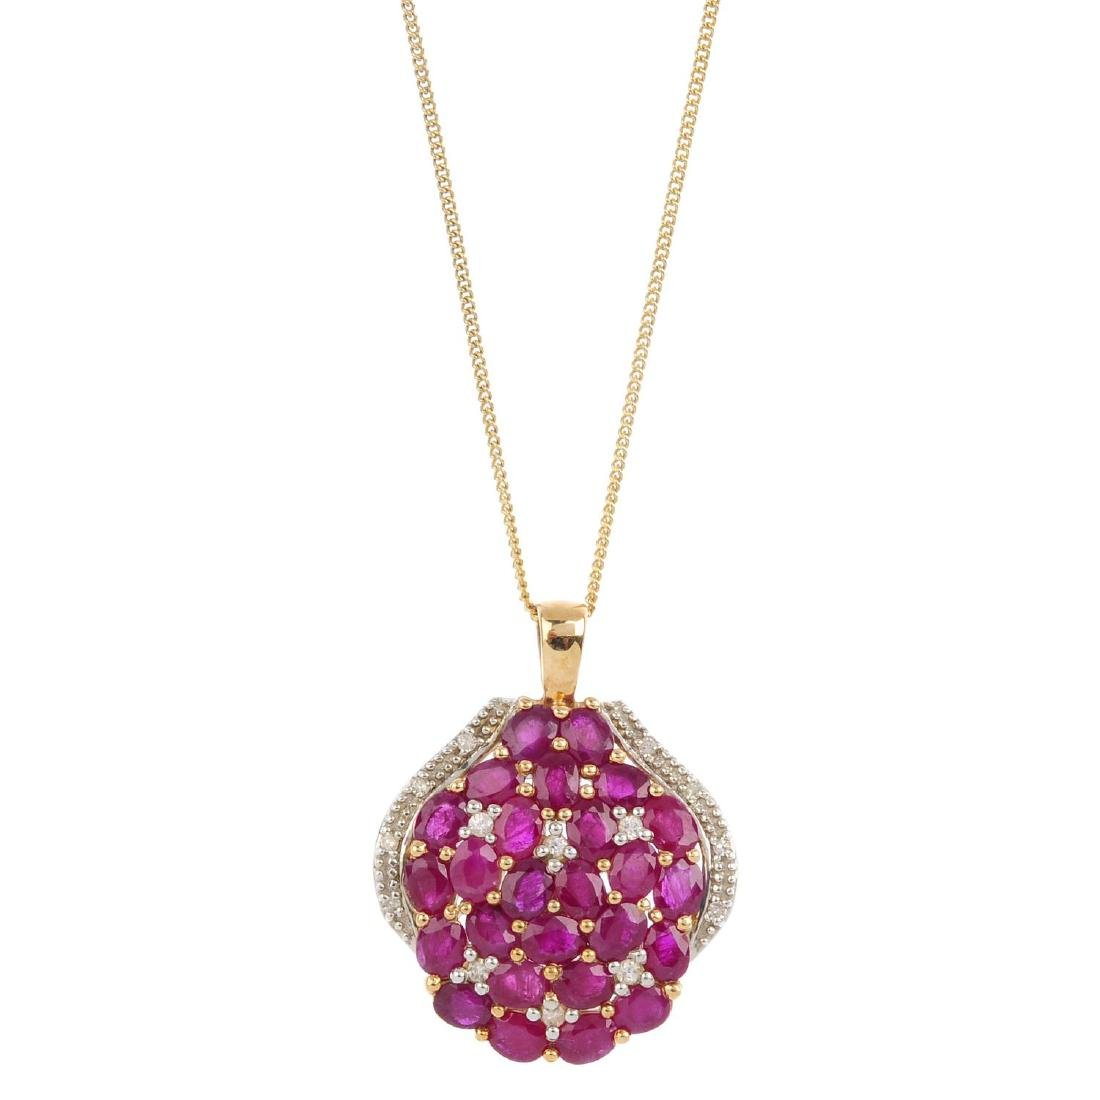 A ruby, cubic zirconia and diamond pendant. Designed as